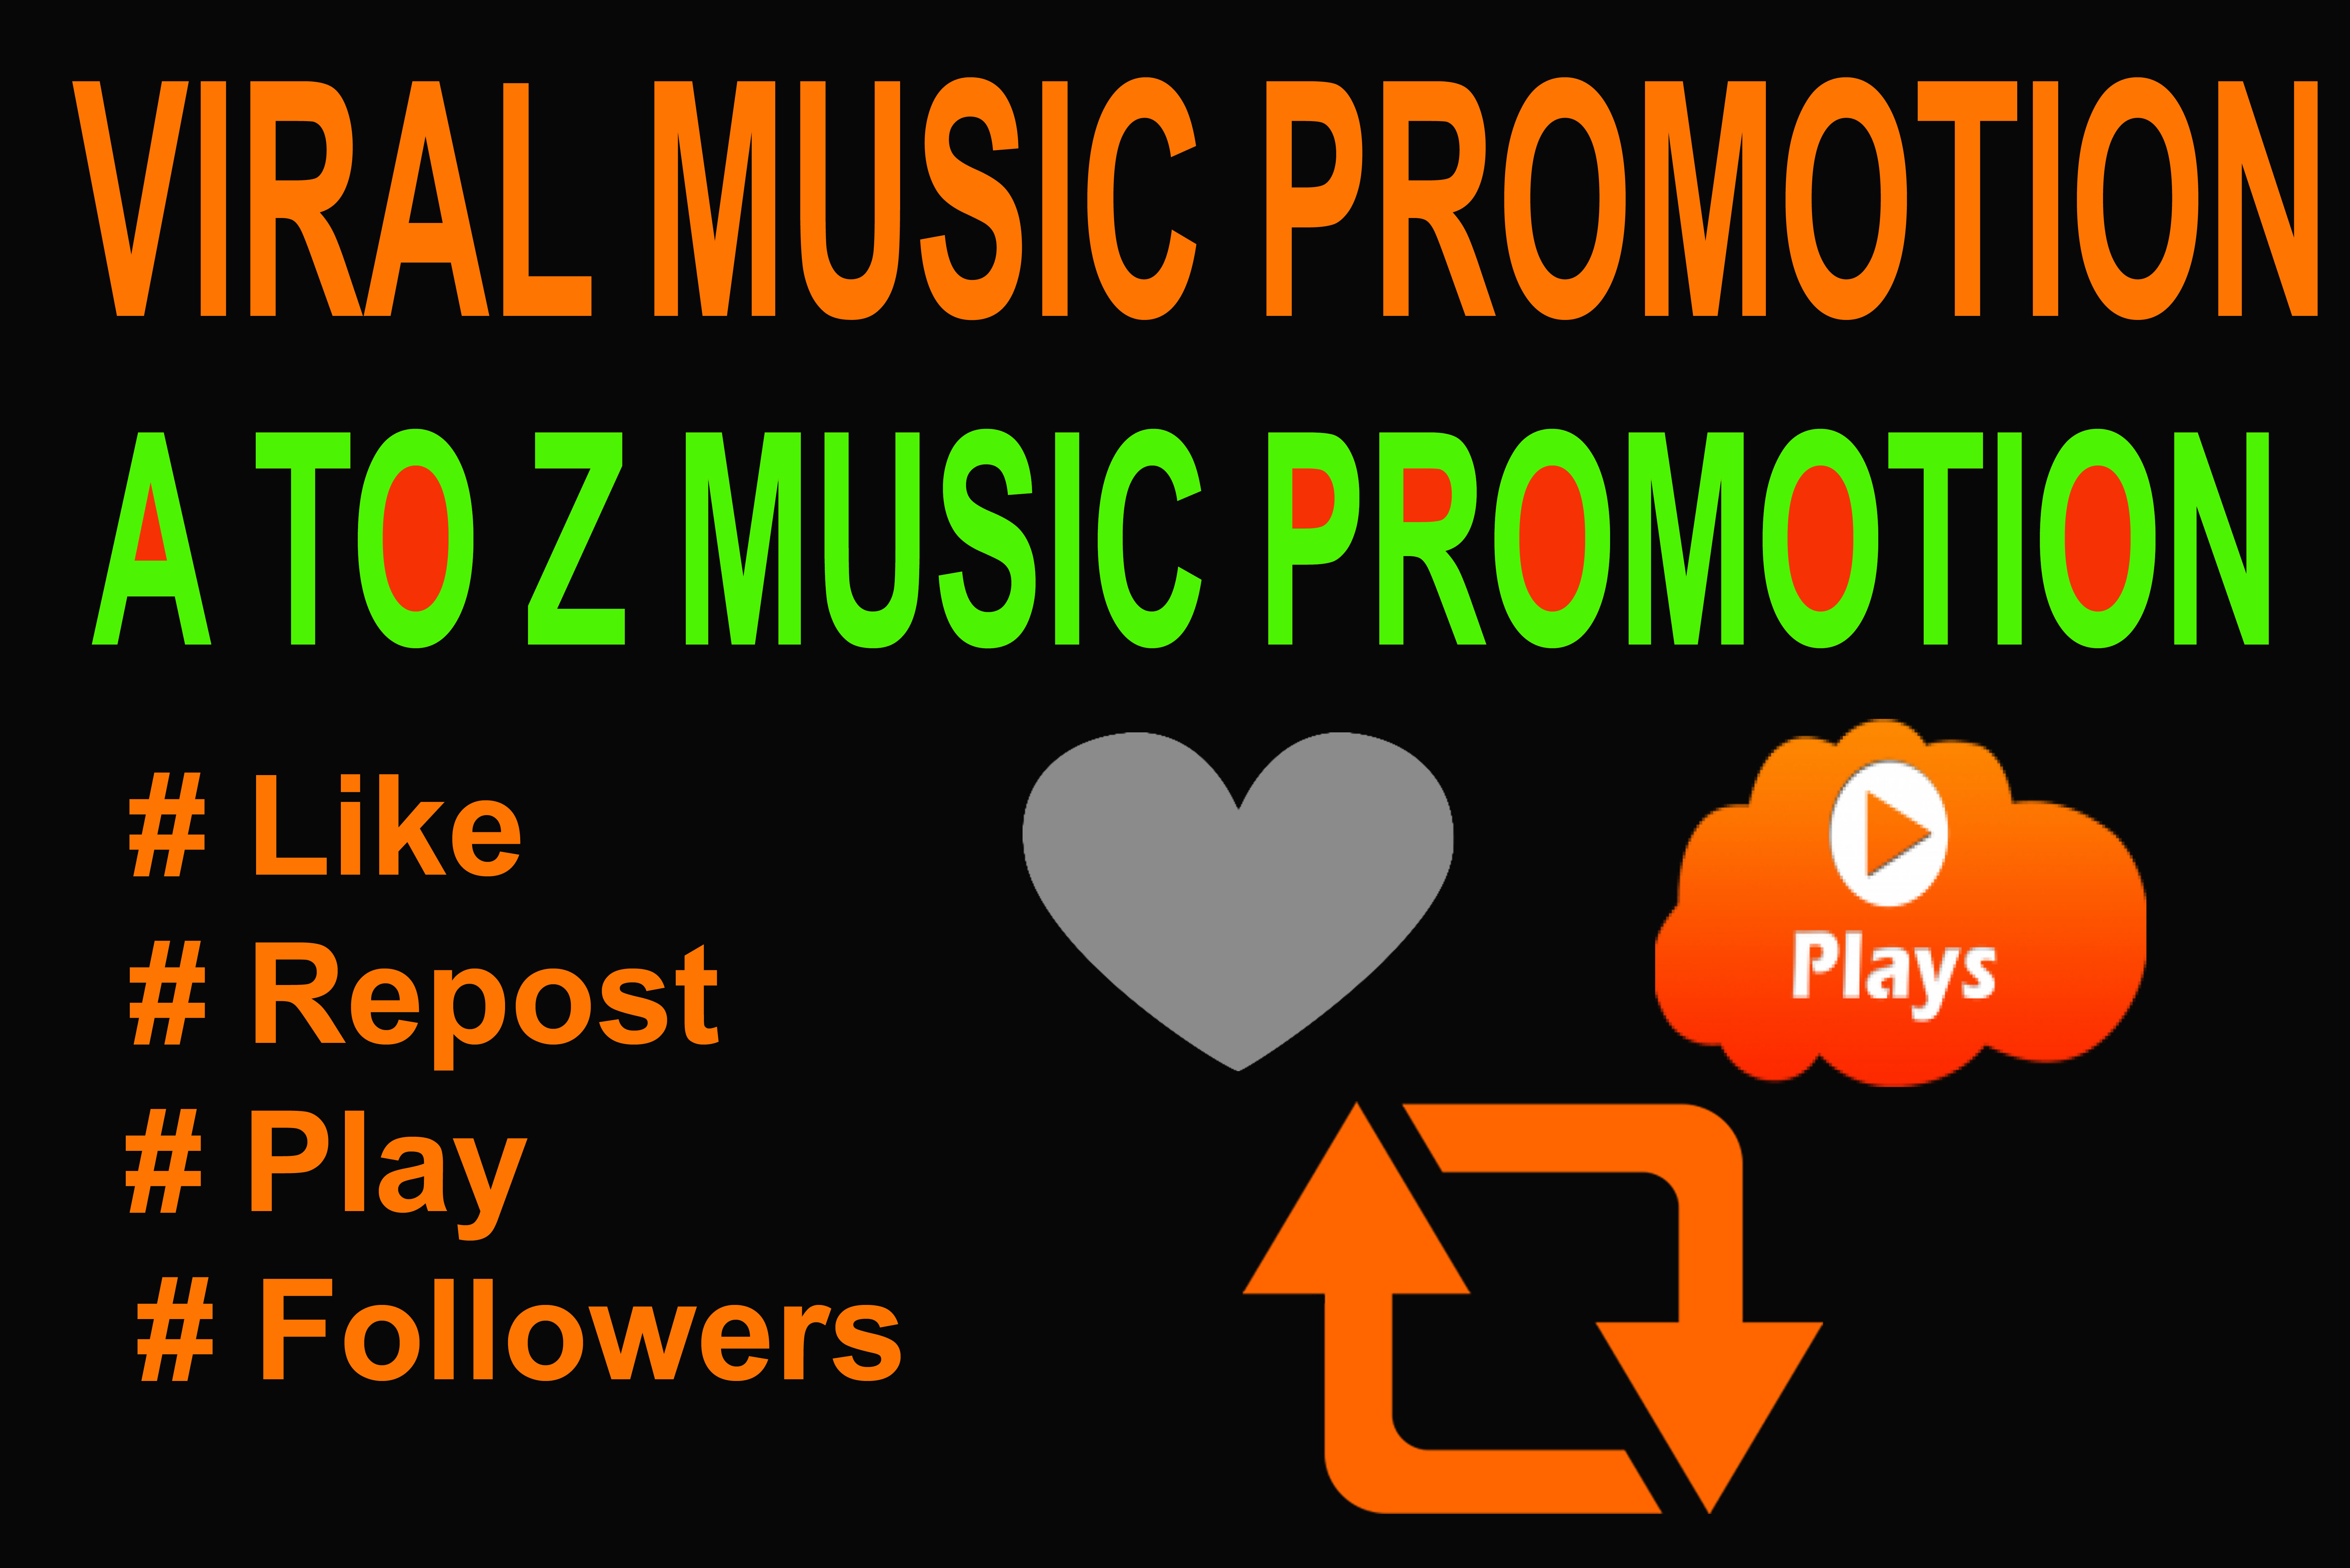 Valid-Music-Promotion-1450-Repost-Or-1450-Followers-Or-1450-Like